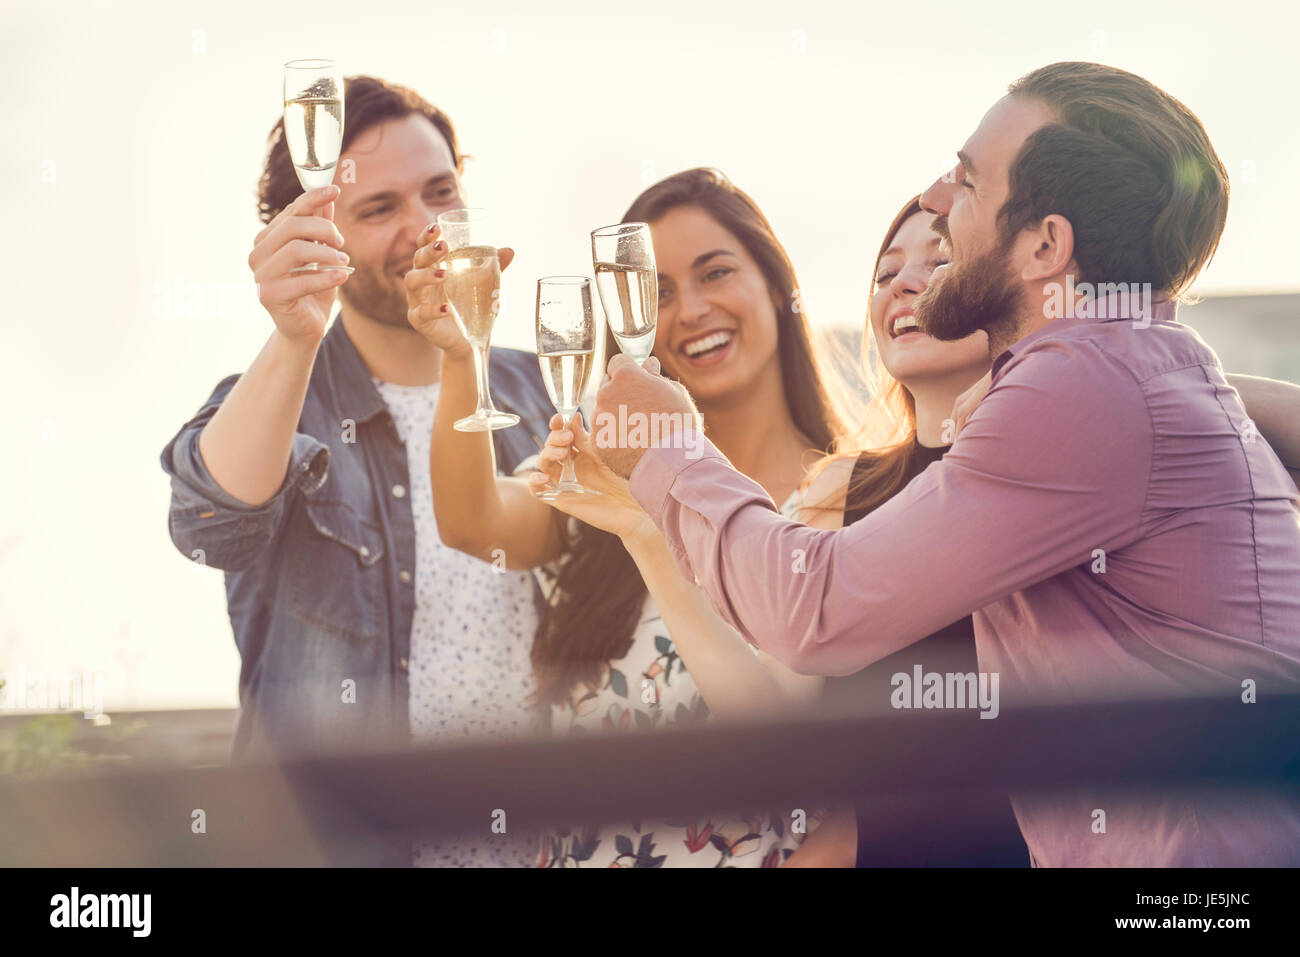 Friends drinking champagne together outdoors Photo Stock